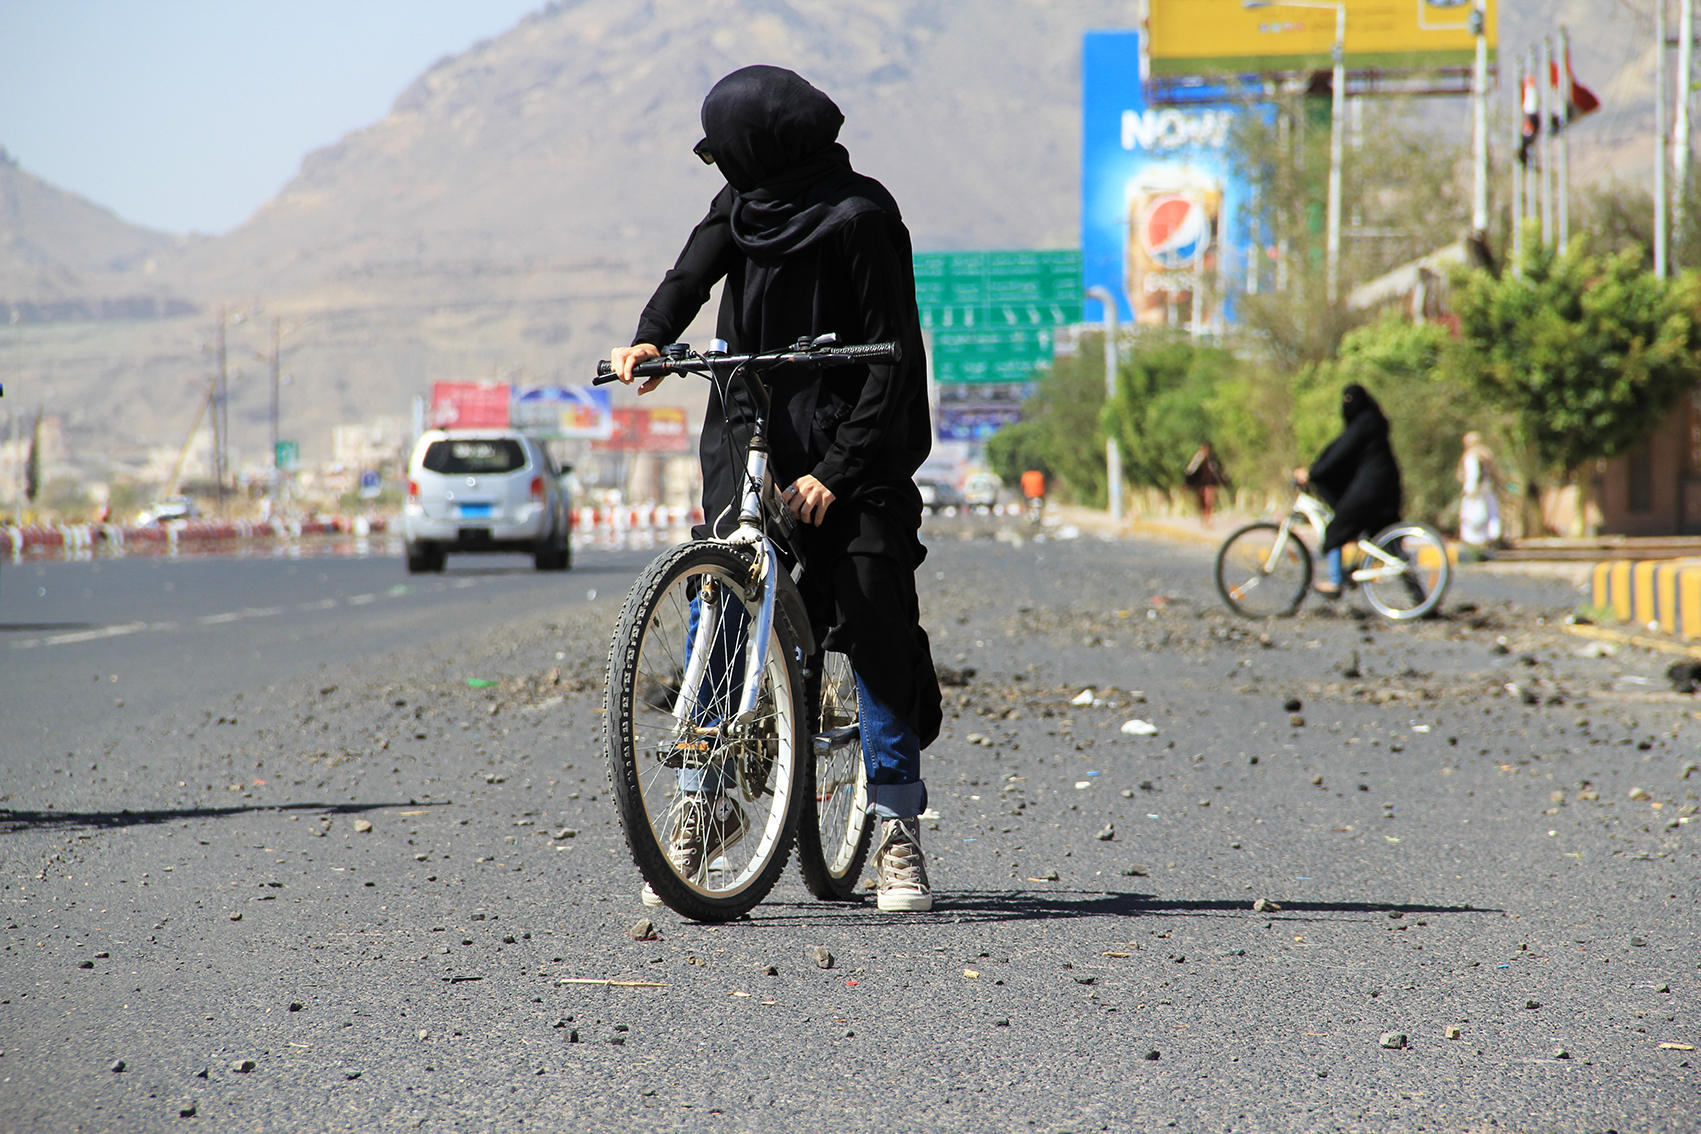 Bike for Yemen. Photo credit: Bushra al-Fusail